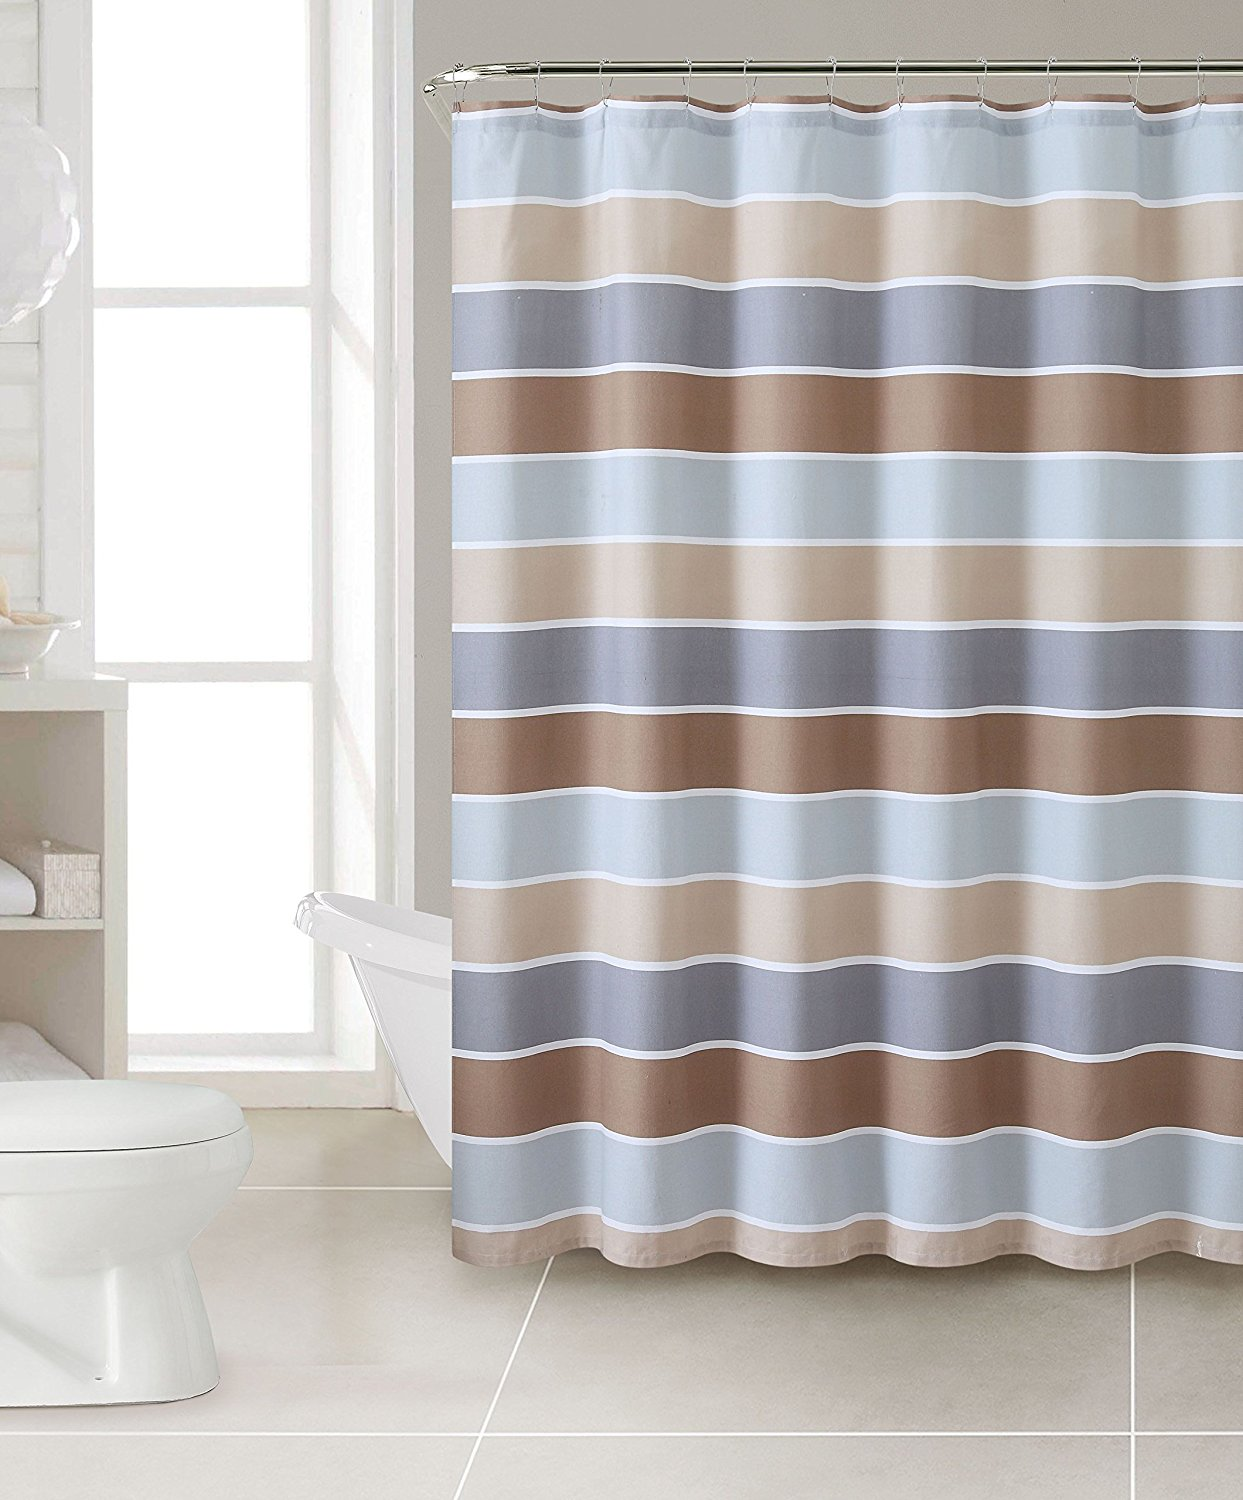 Get Quotations · Wholesalebeddings Cinder Brown Gray Teal Turquoise White  Striped 100% Cotton Fabric Shower Curtain